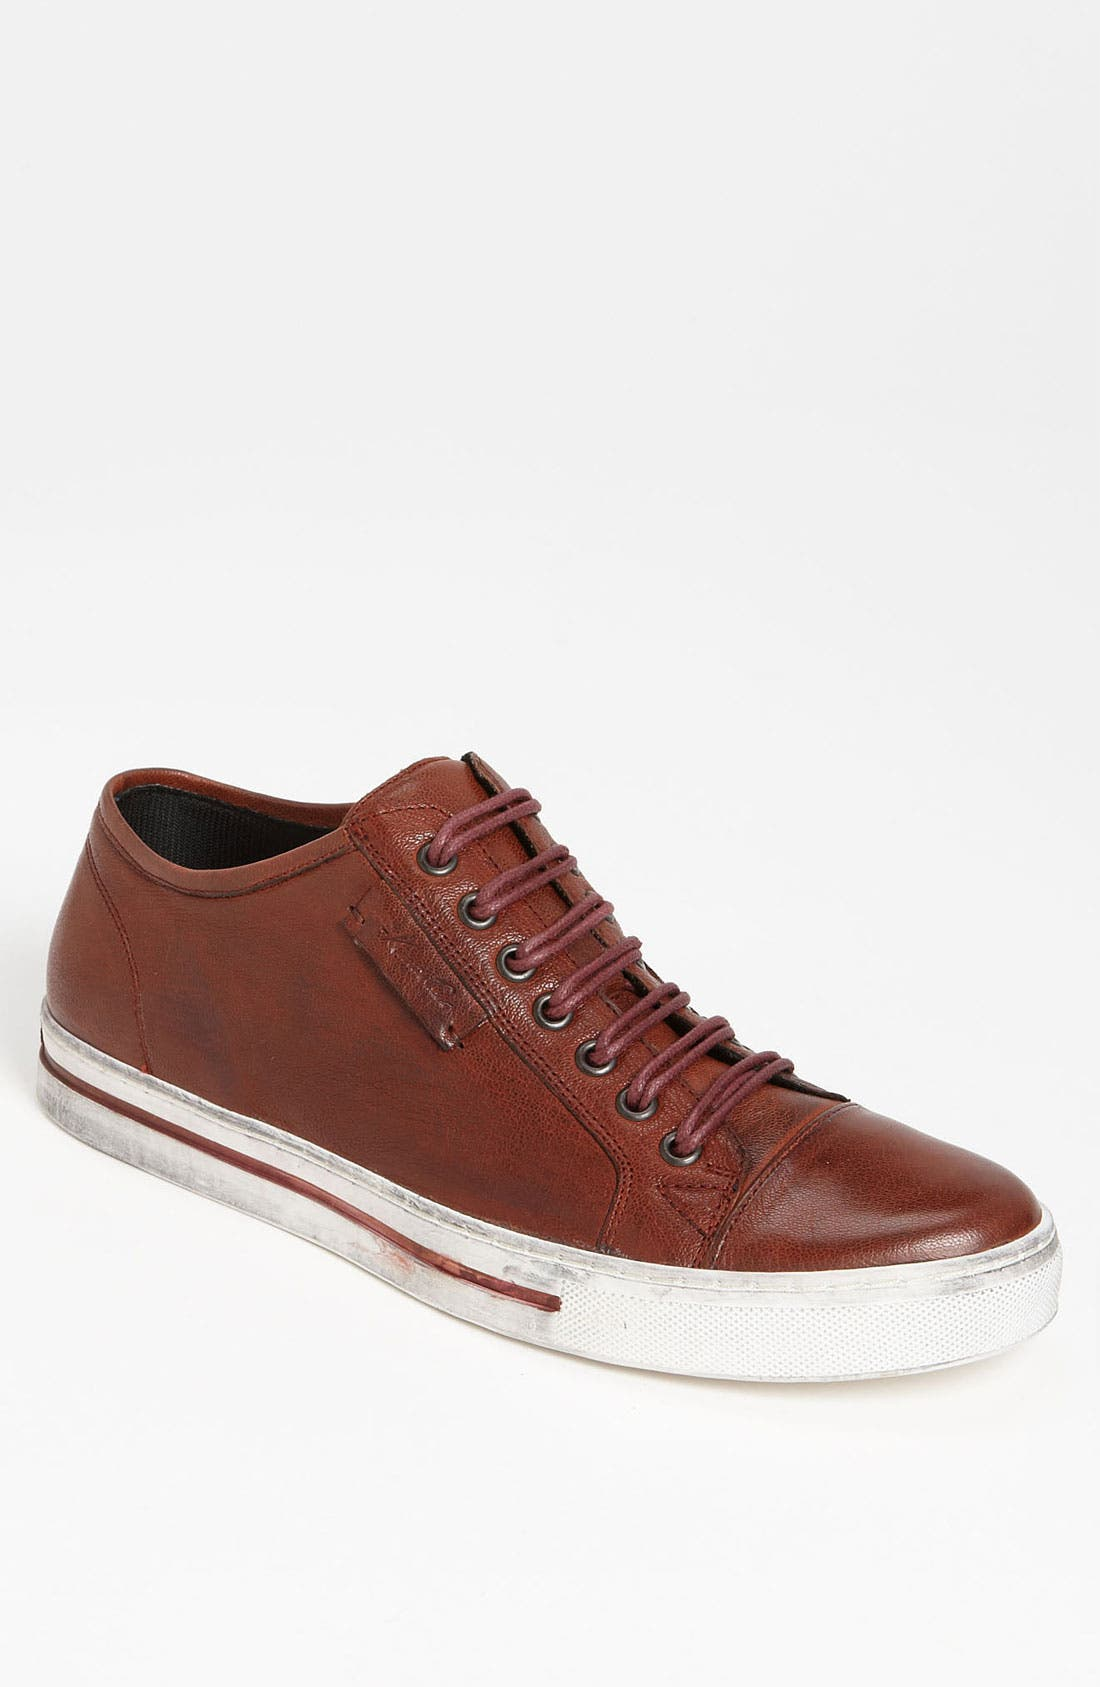 Main Image - Kenneth Cole New York 'On the Double' Sneaker (Men)